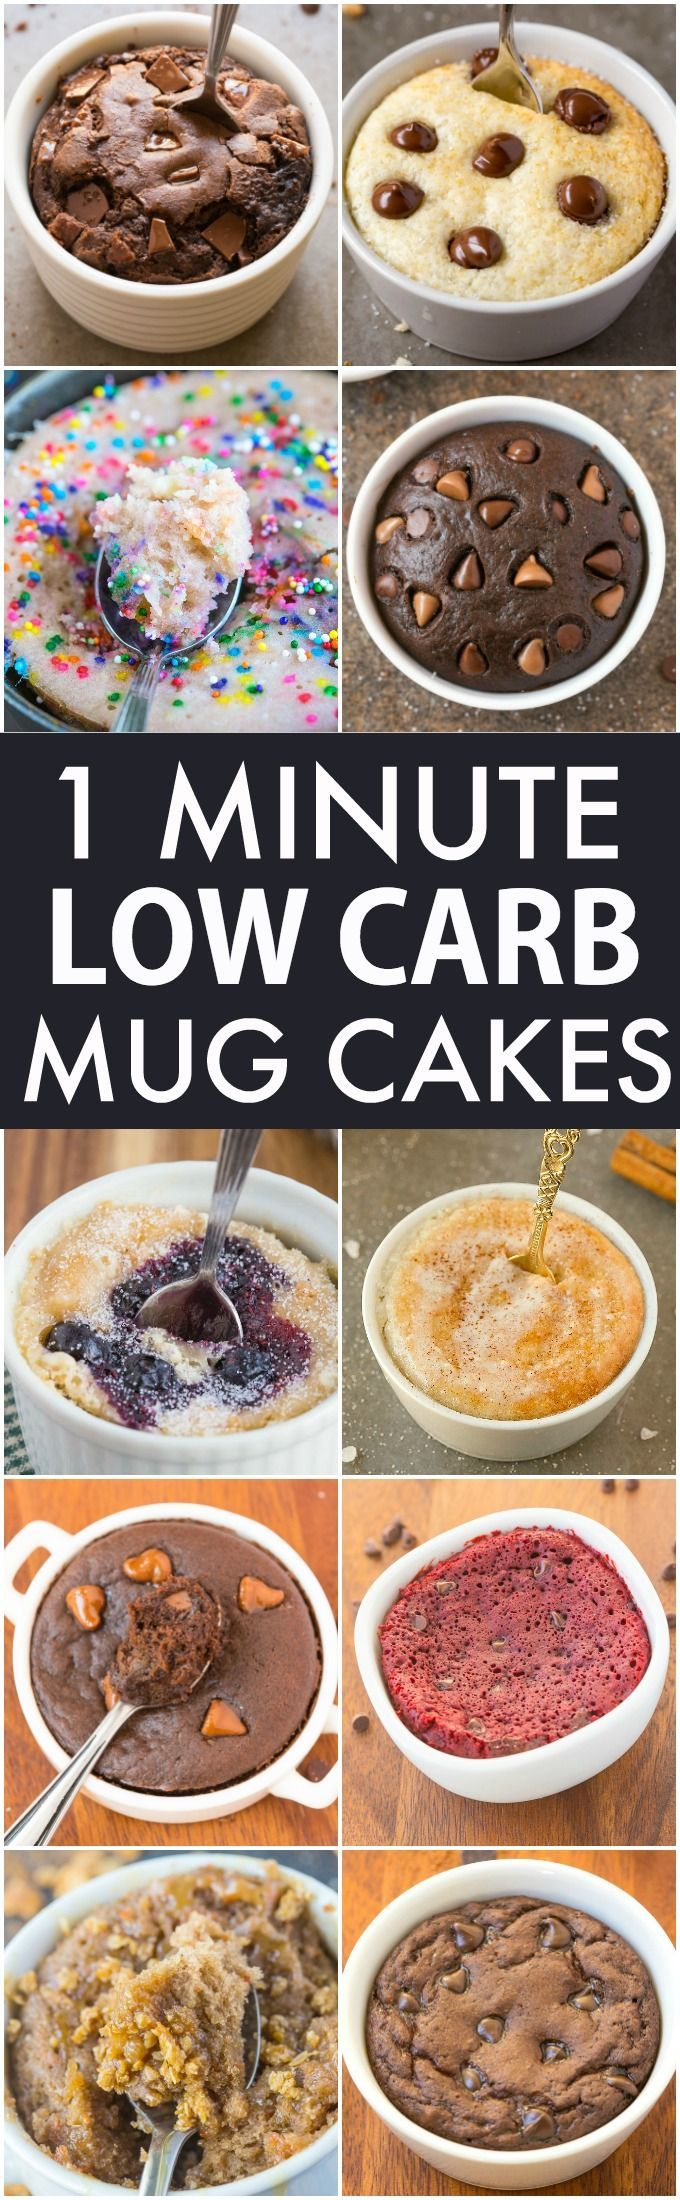 Low Carb Healthy 1 Minute Mug Cakes, Brownies and Muffins (V, GF, Paleo)- Delicious, single ...